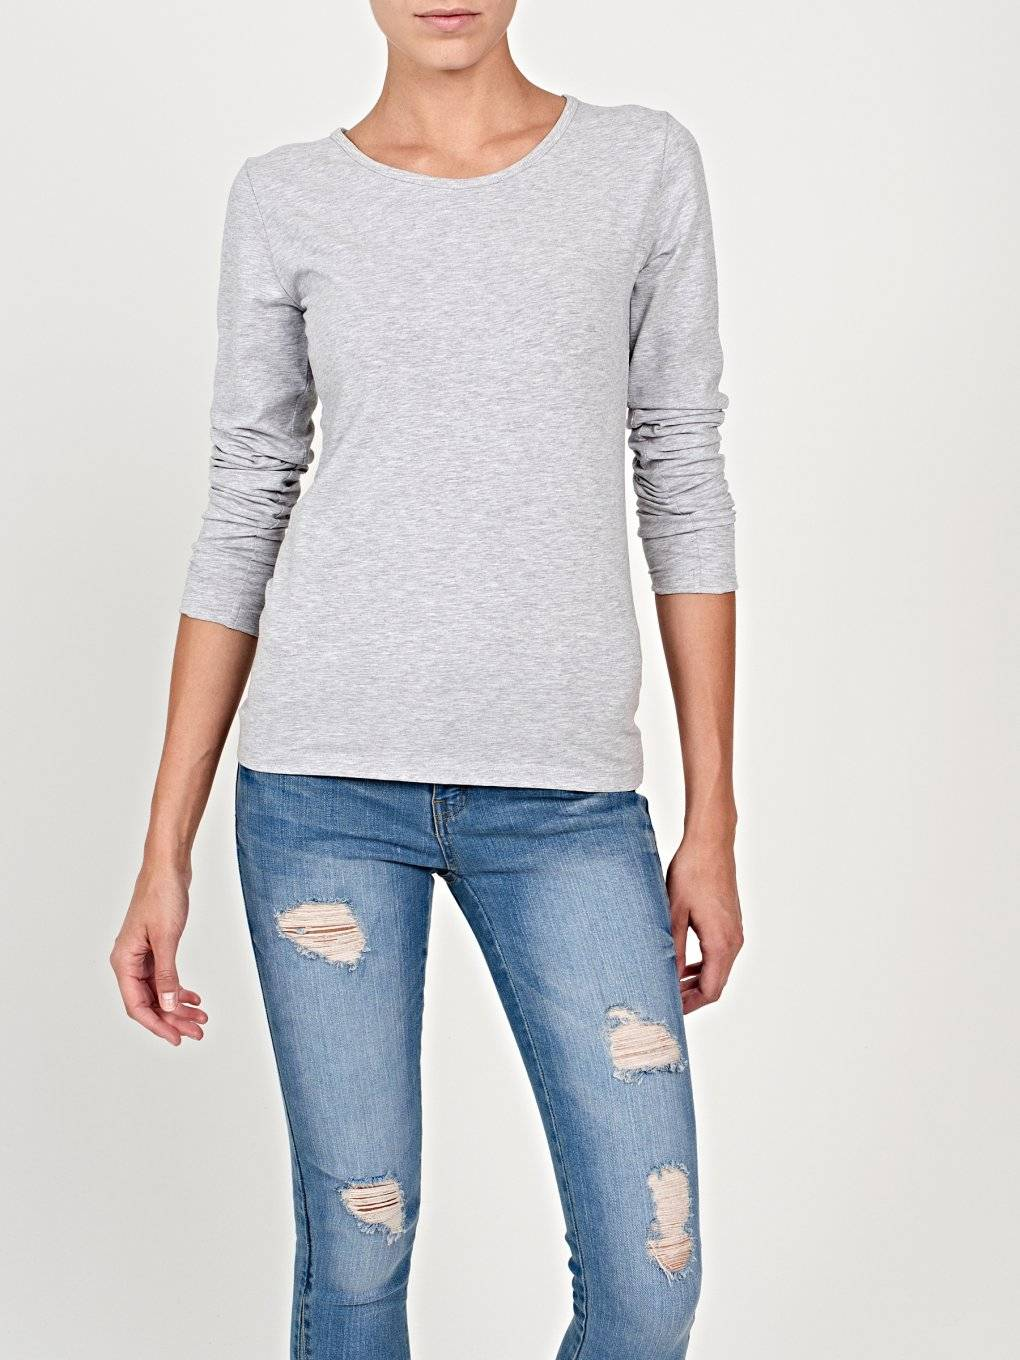 Basic stretch t-shirt